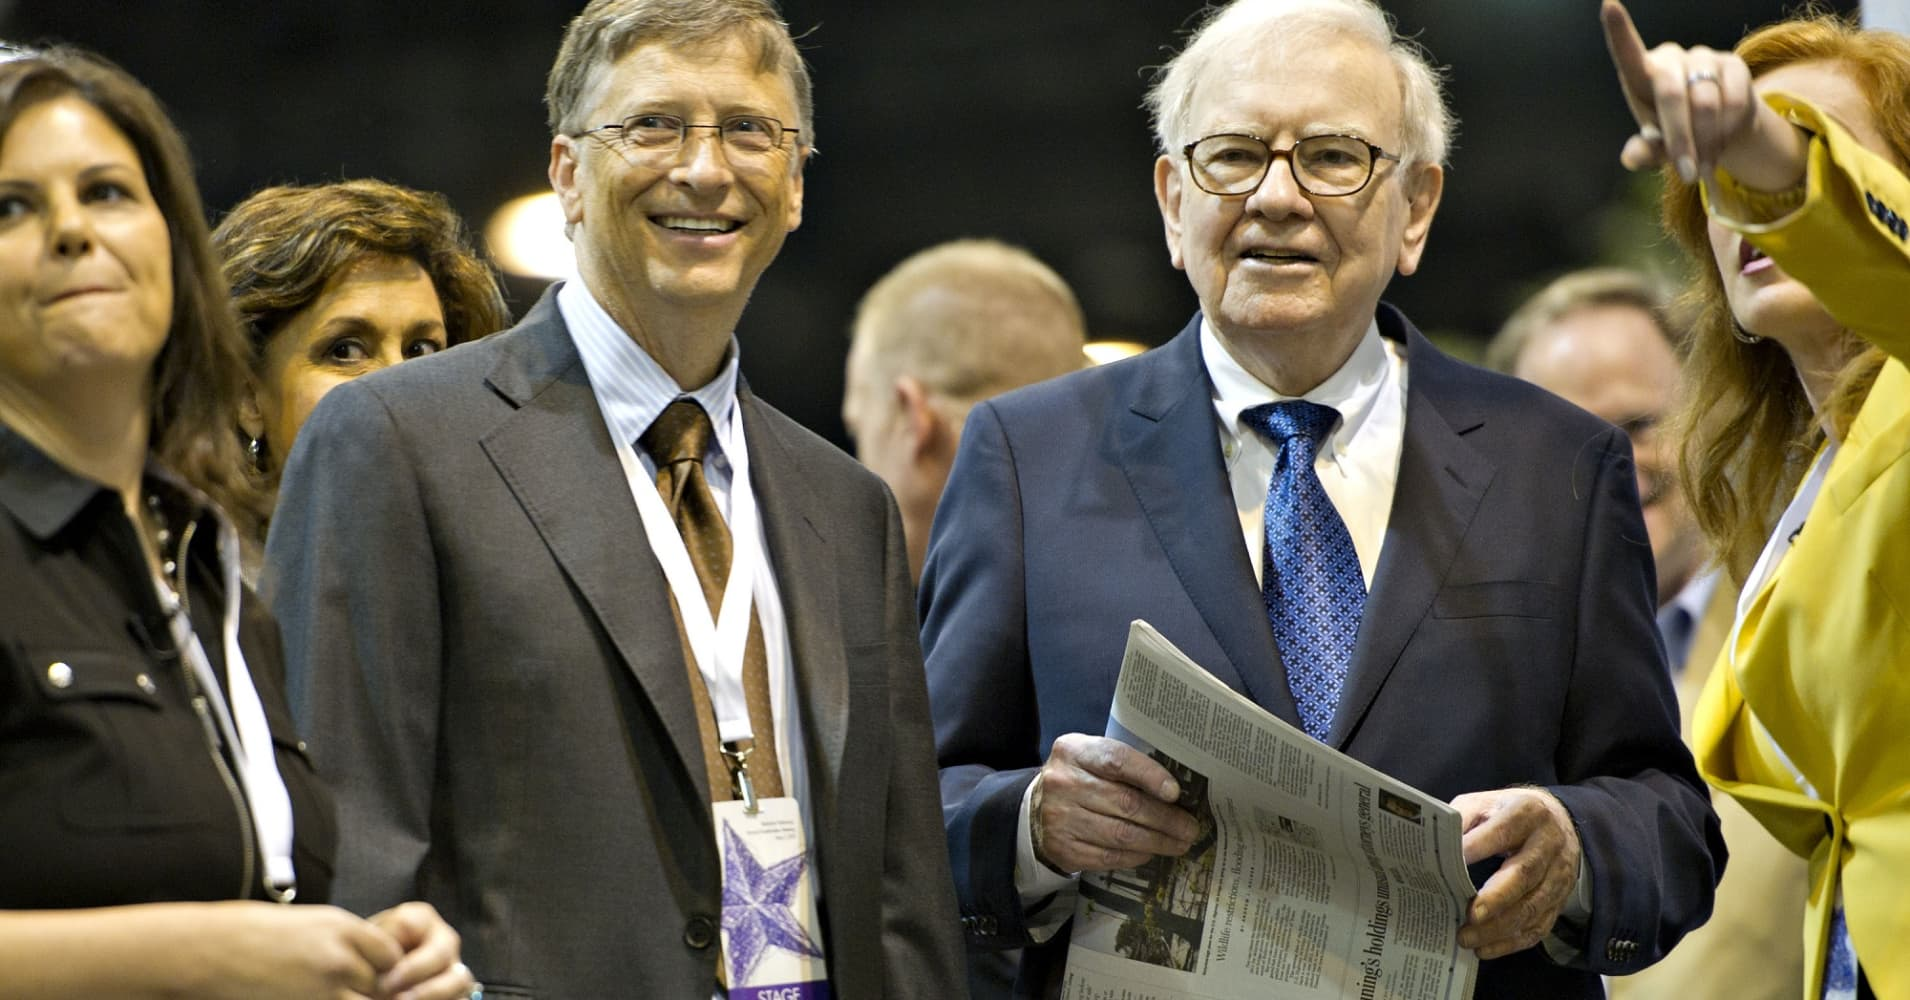 Warren Buffett, chairman of Berkshire Hathaway Inc., right, and Bill Gates, chairman and co-founder of Microsoft Corp., participate in a newspaper toss event at the Berkshire Hathaway annual shareholders meeting on Saturday, May 5, 2012.